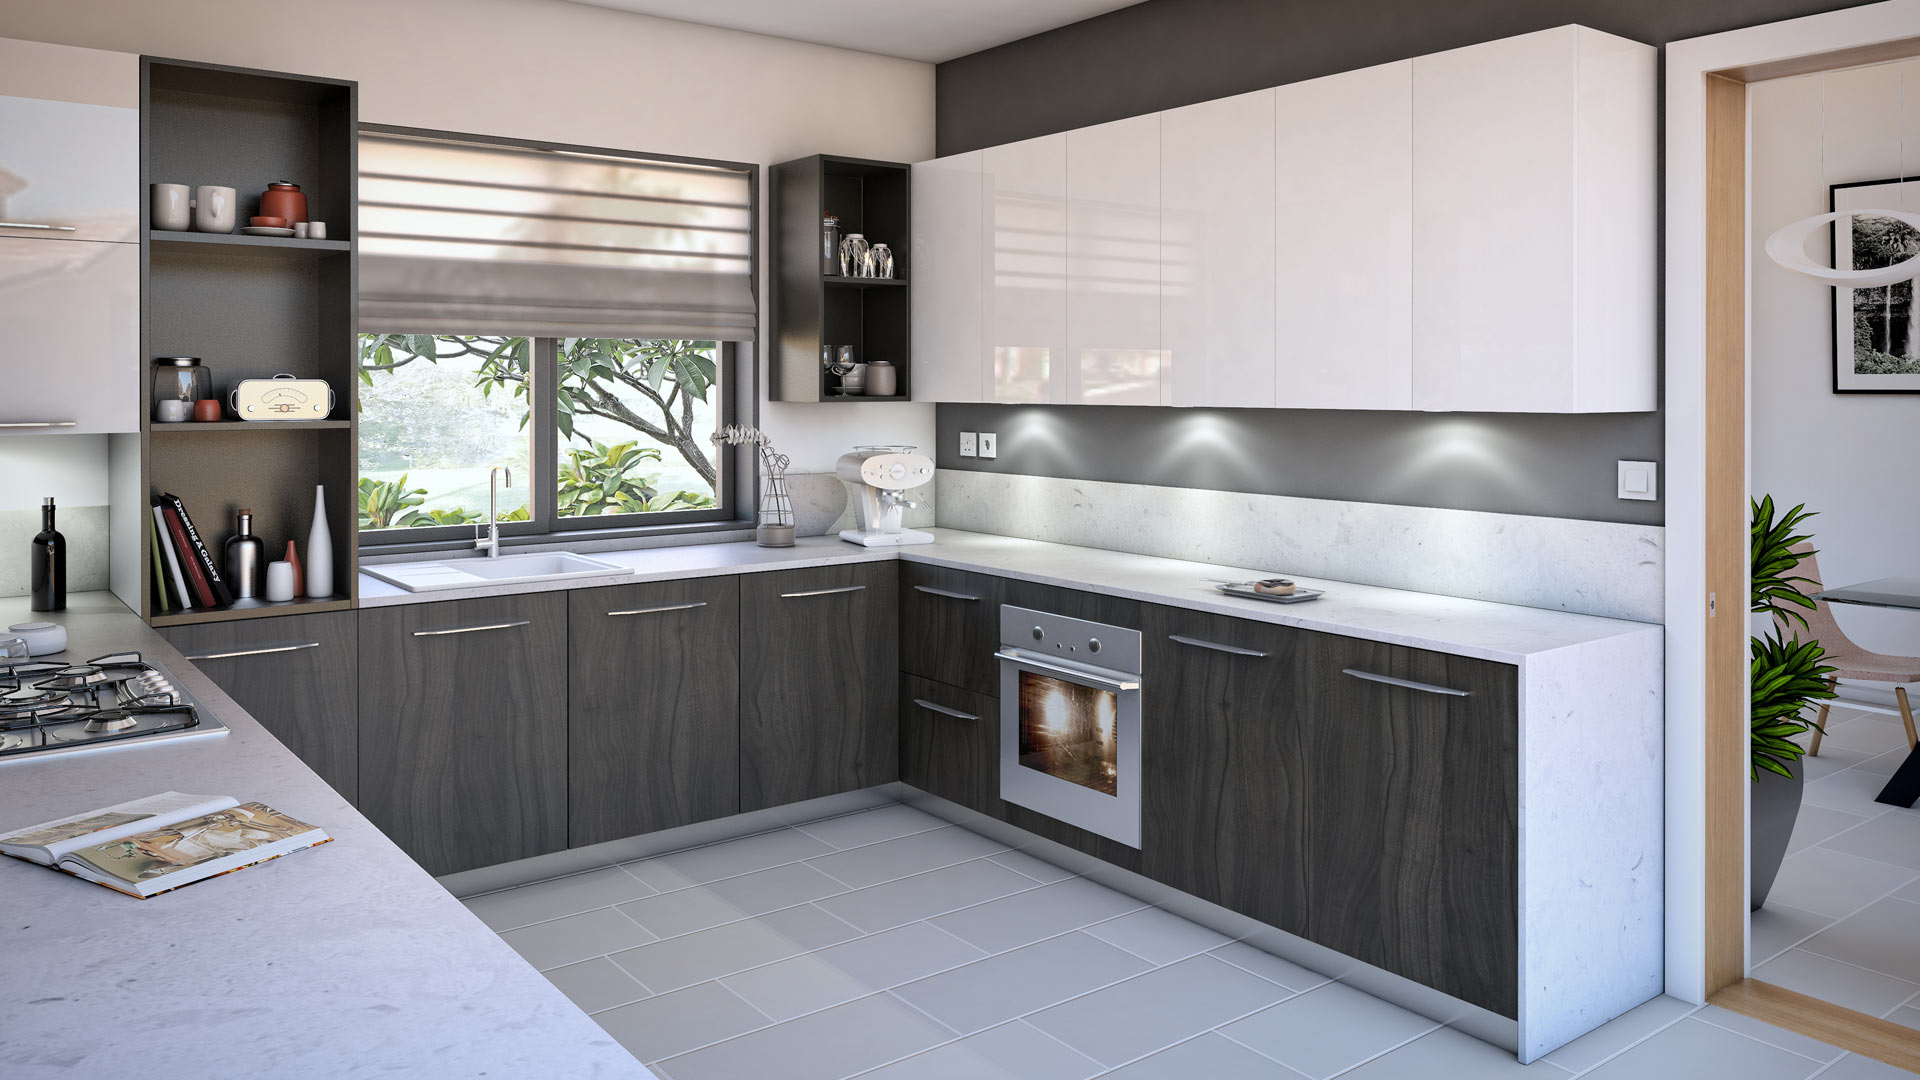 260215_RV_CGI_KITCHEN_FINAL_BJ-2